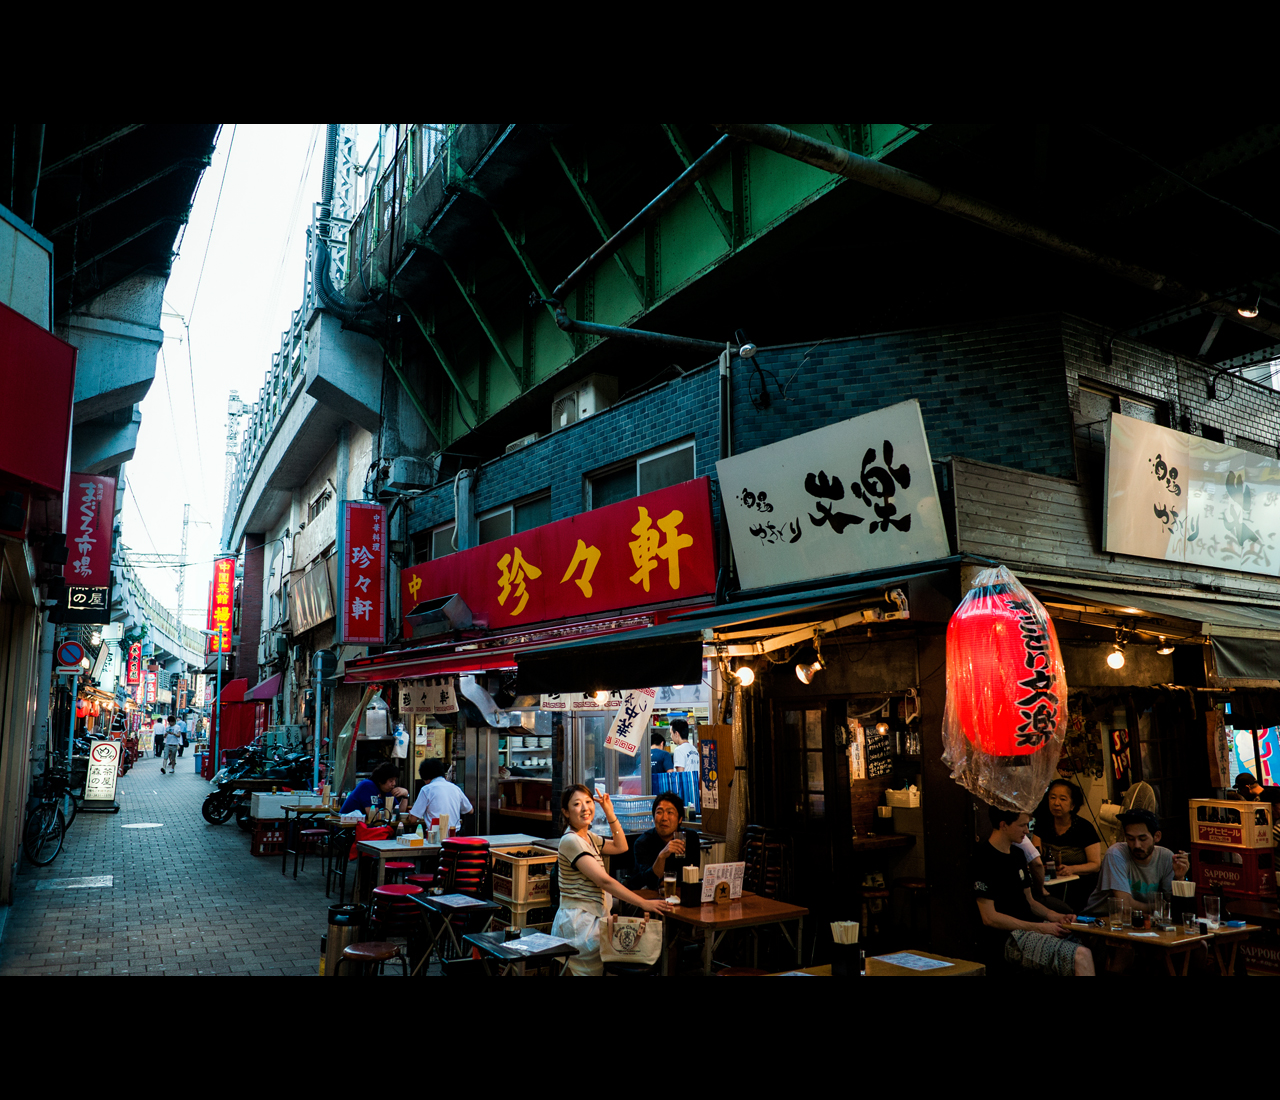 Ueno by burningmonk